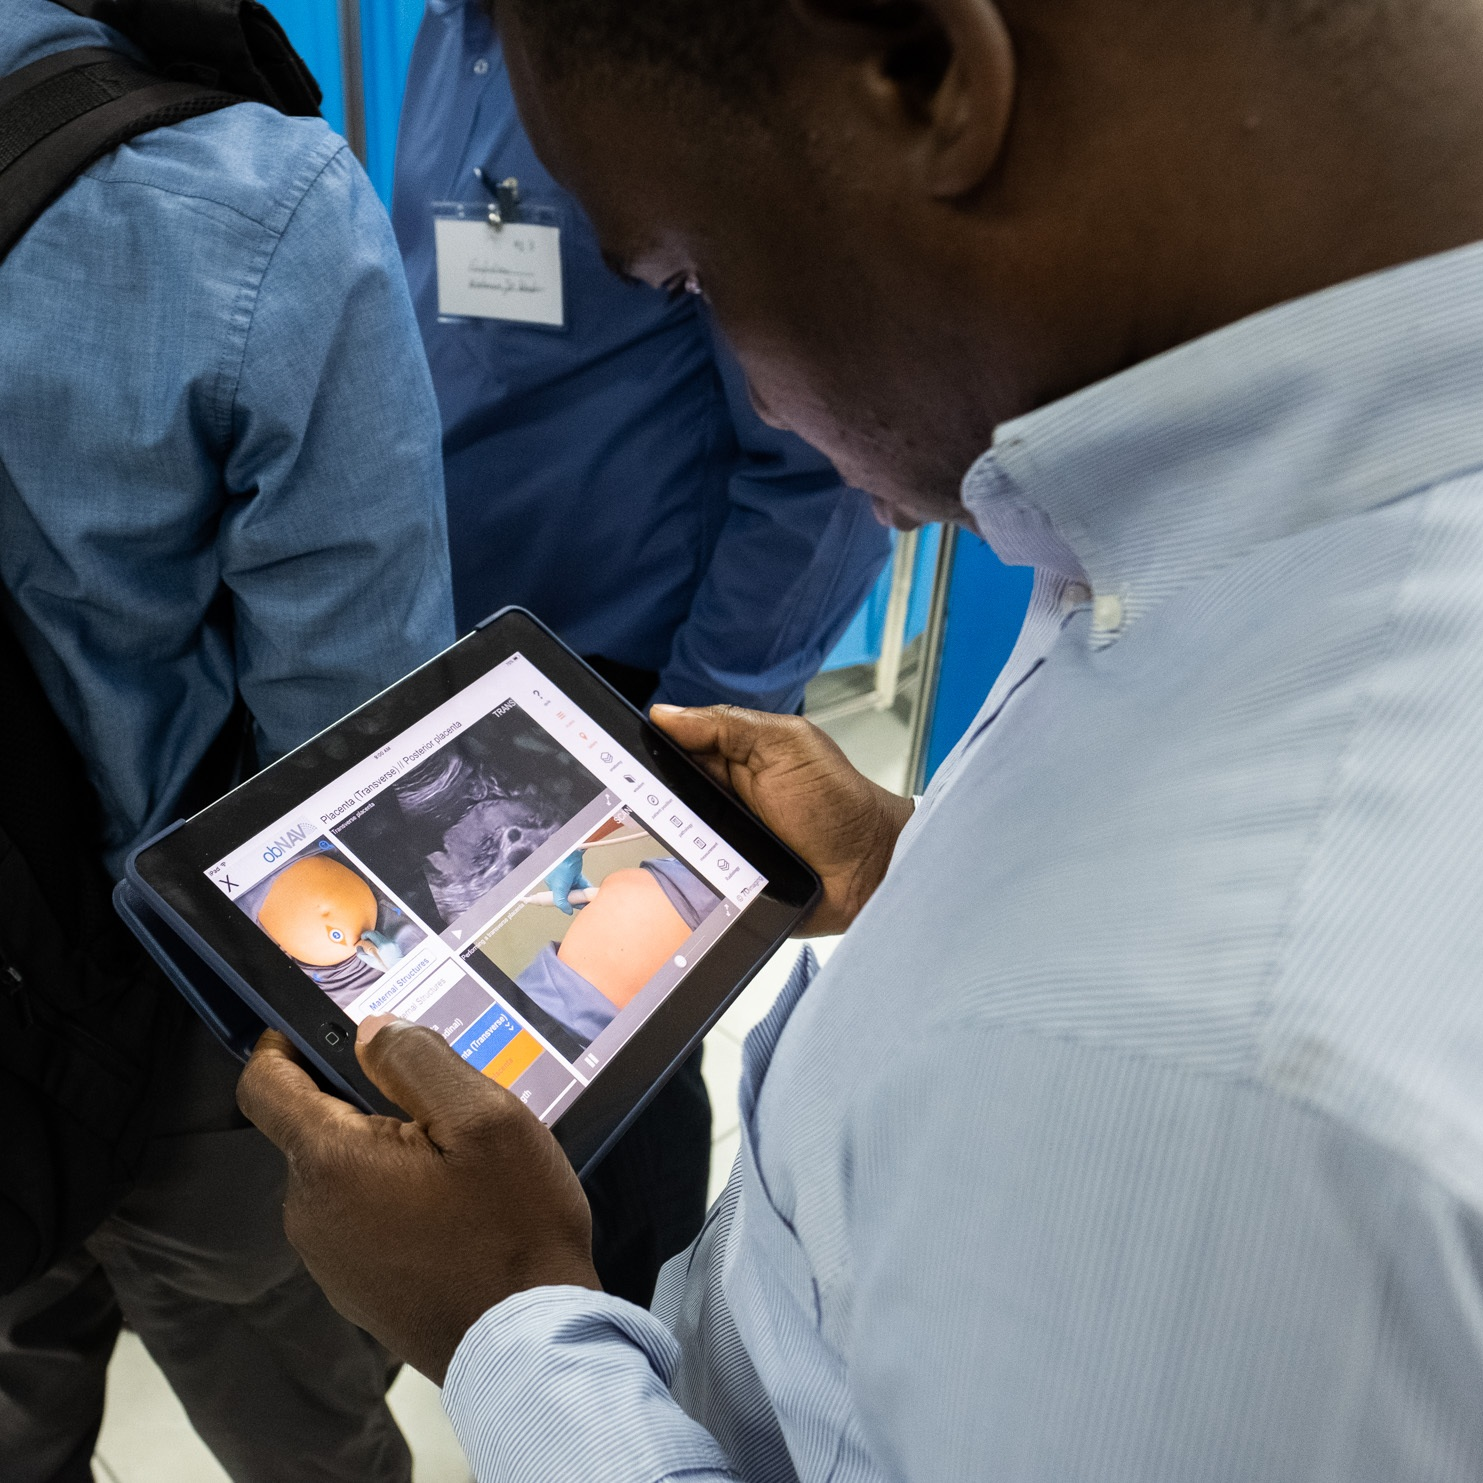 An old iPad from Boulder, CO, saving lives in Haiti.